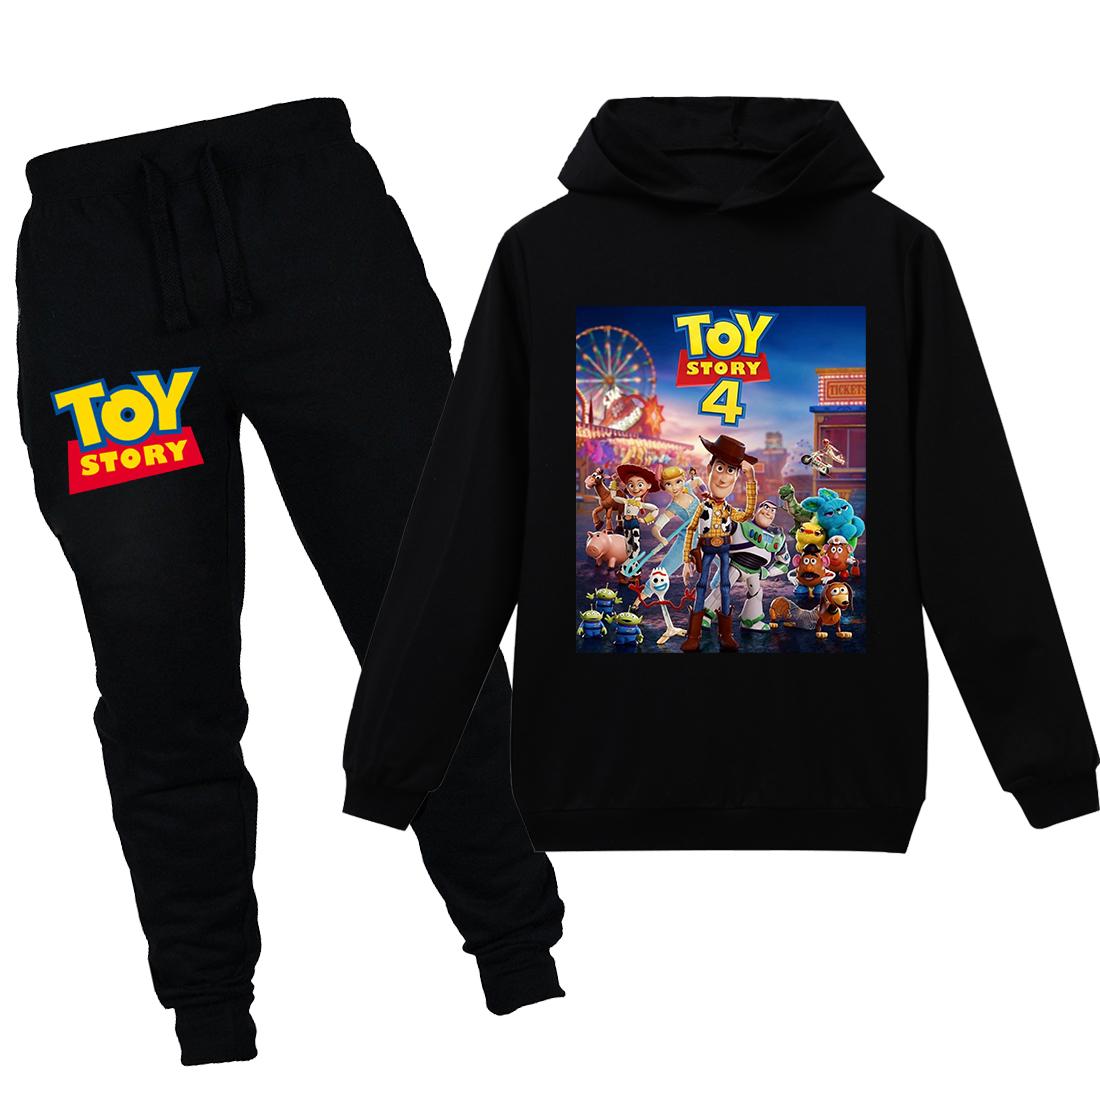 Toy Story 4 Kids Boys Girls Casual Outfits Character Hoodies Sweatshirt Top+Pant